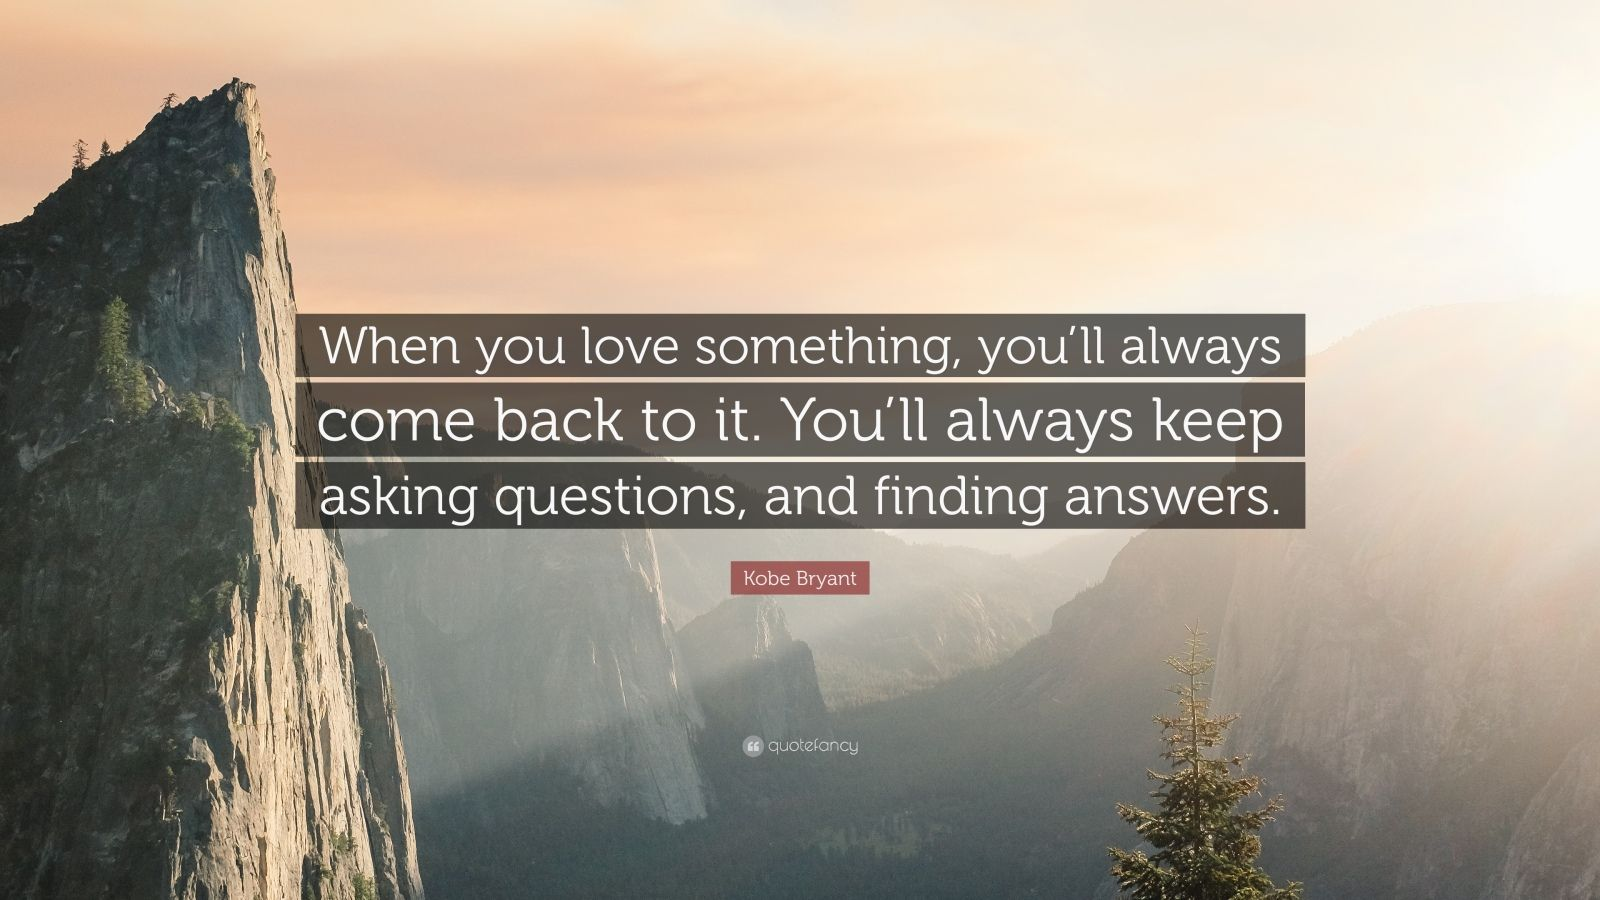 """Kobe Bryant Quote: """"When you love something, you'll always come back to it. You'll always keep asking questions, and finding answers."""""""